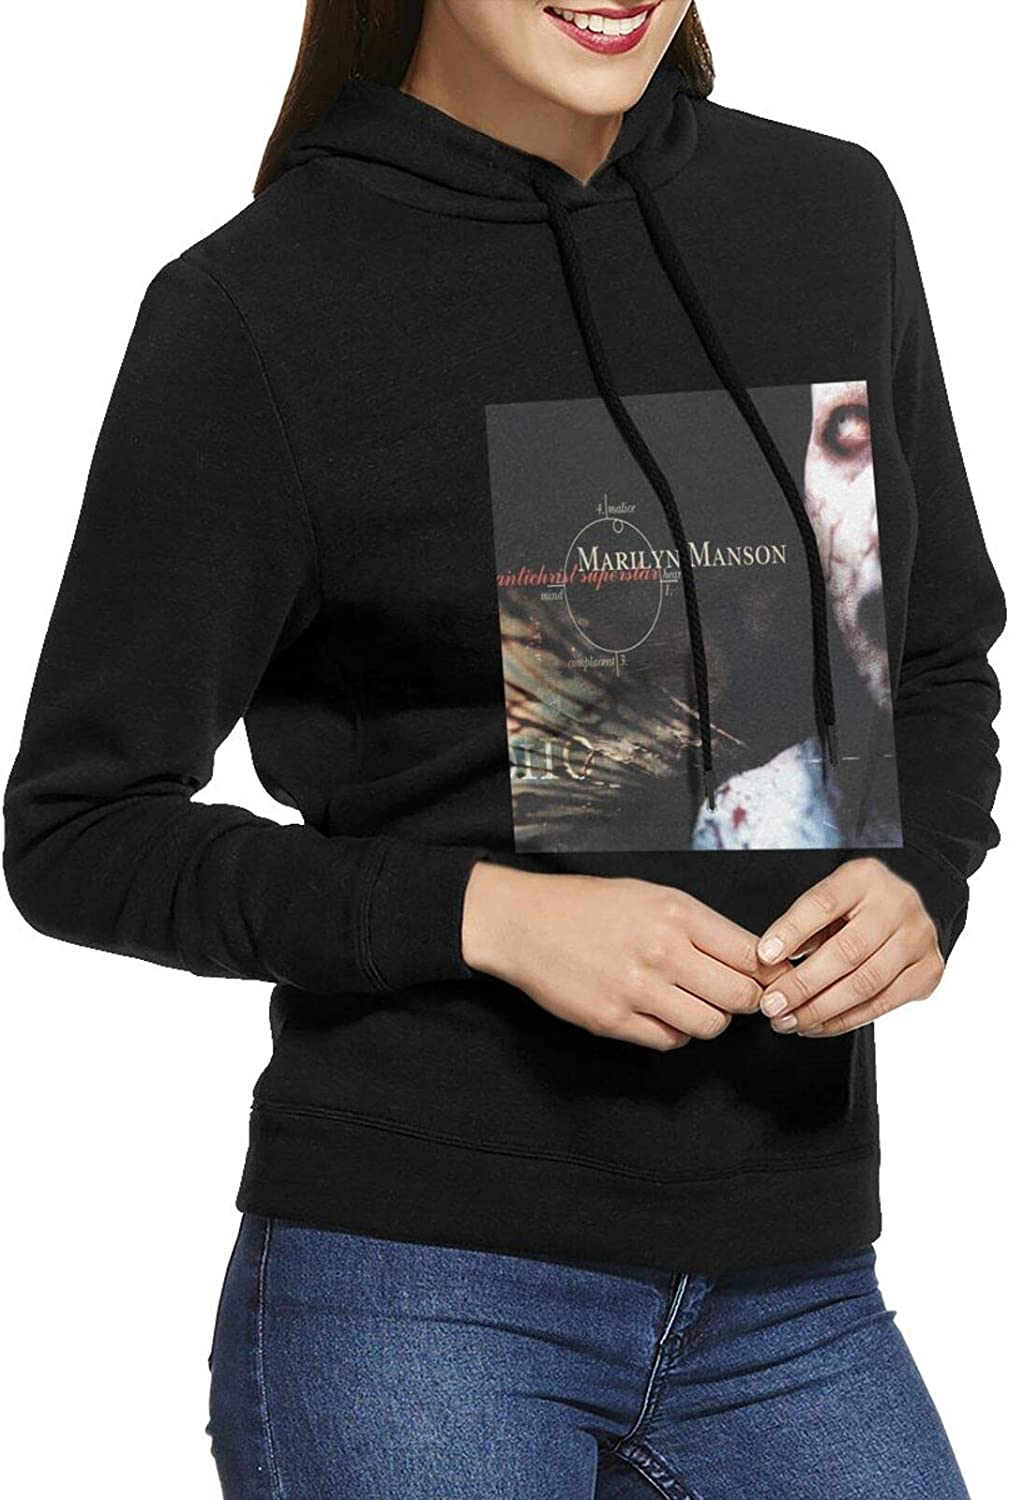 Marilyn Manson Antichrist Superstar Sweatsh Casual Hoodie Female SEAL limited product Clearance SALE! Limited time!